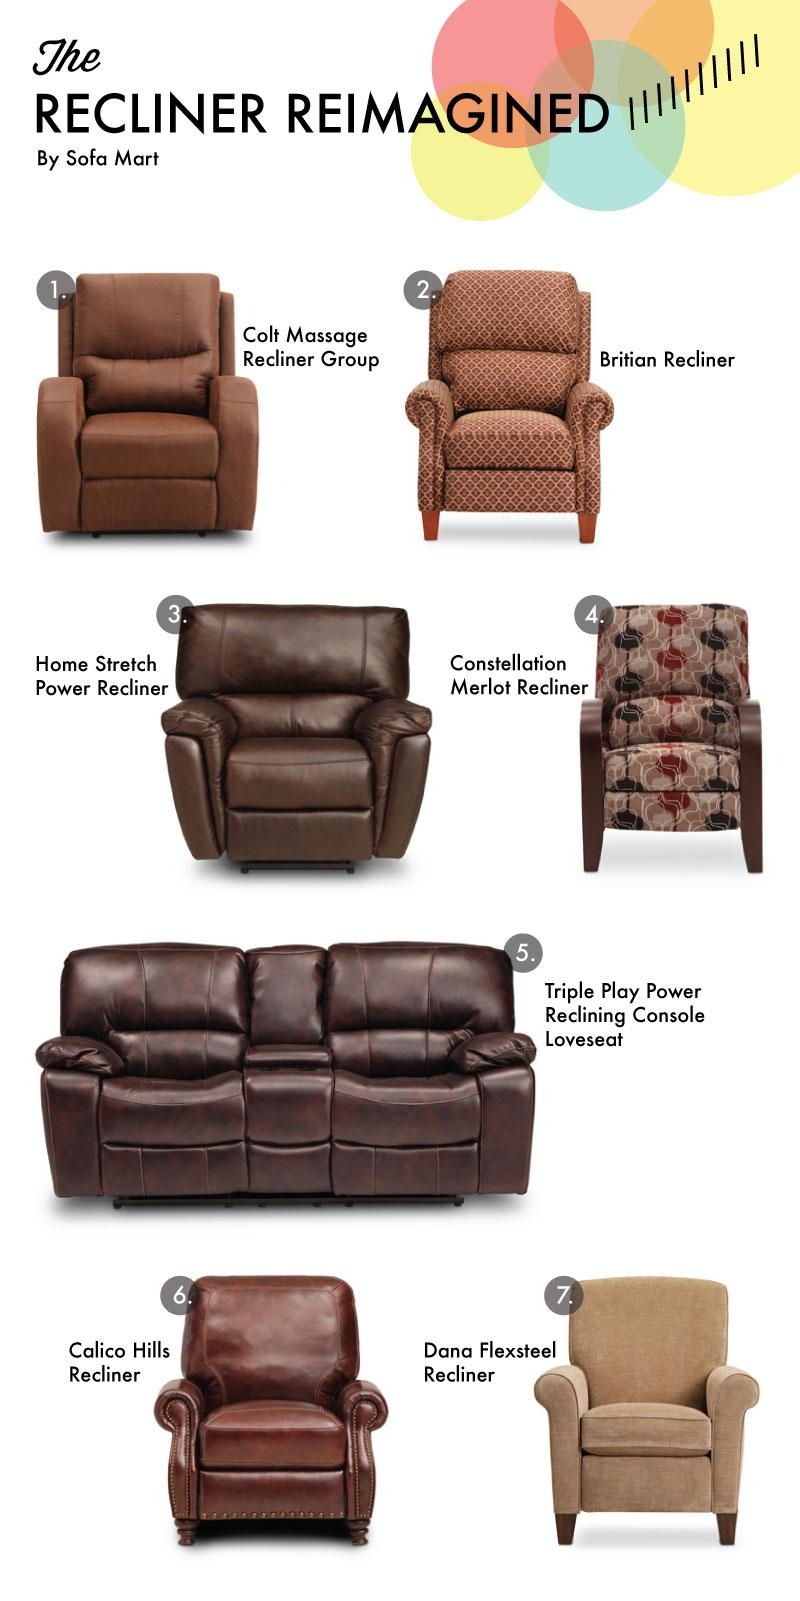 Recliner Reimagined For Father's Day – Sofa Mart For The Front Door Throughout Sofa Mart Chairs (Image 12 of 20)